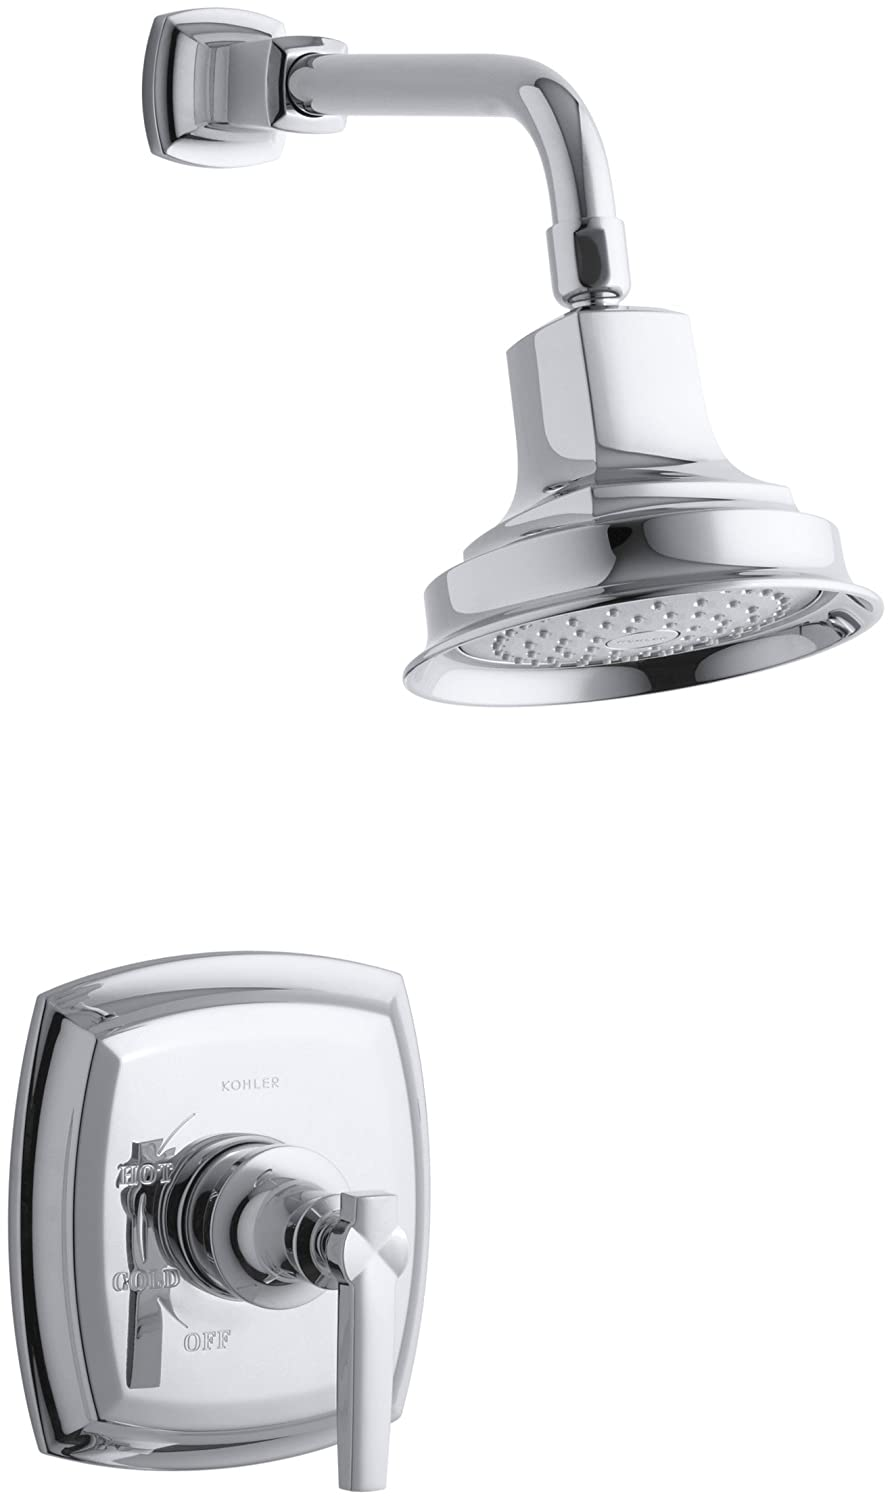 temp shower balancing revival rite kohler k detalle net cp buyplumbing bn faucet product pressure antique